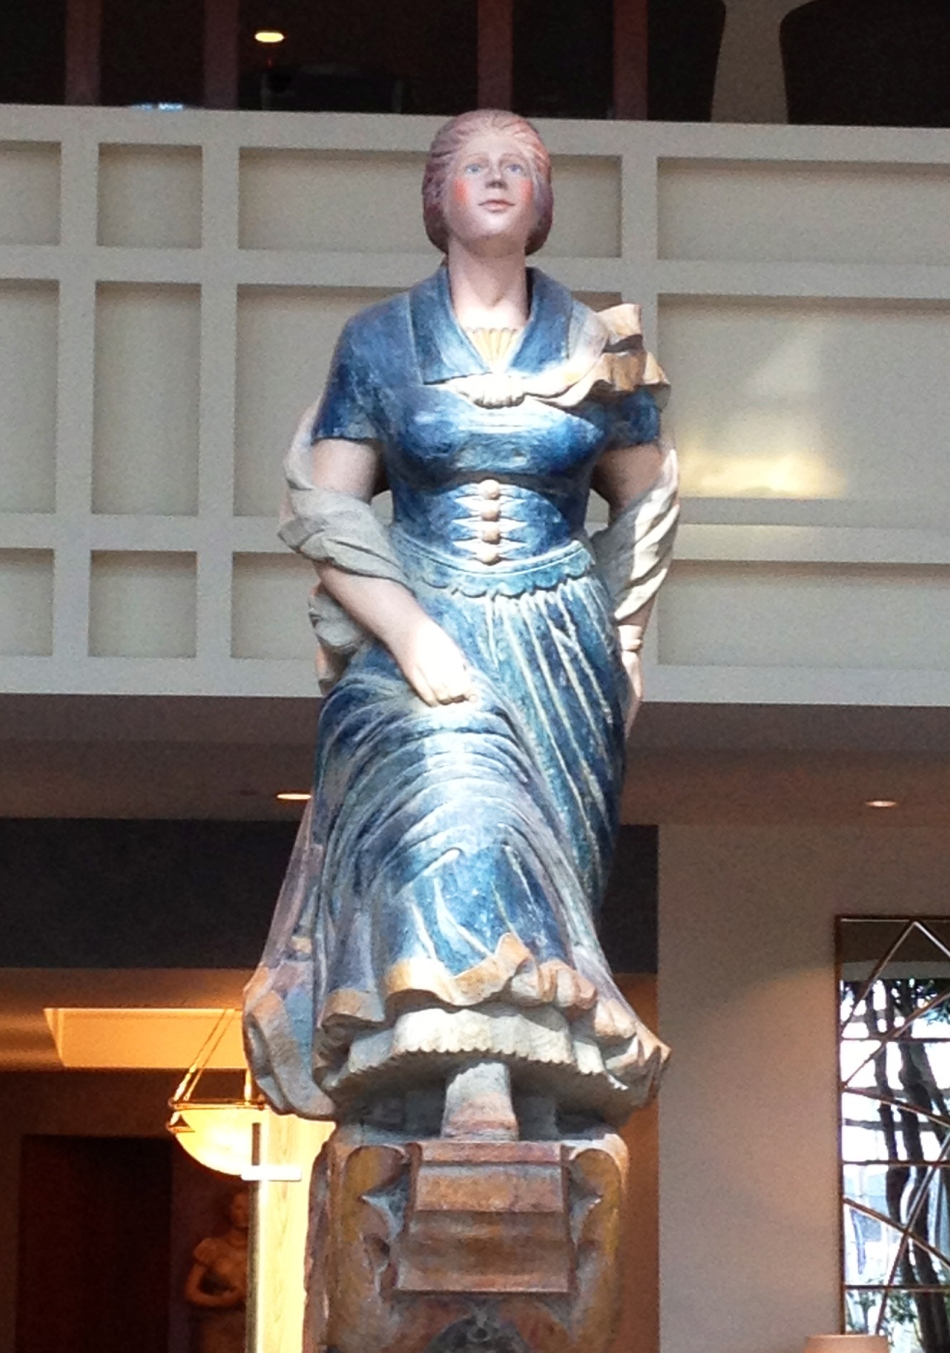 The Hilton lobby is decorated with these female figureheads that look like they came from the bow of a ship